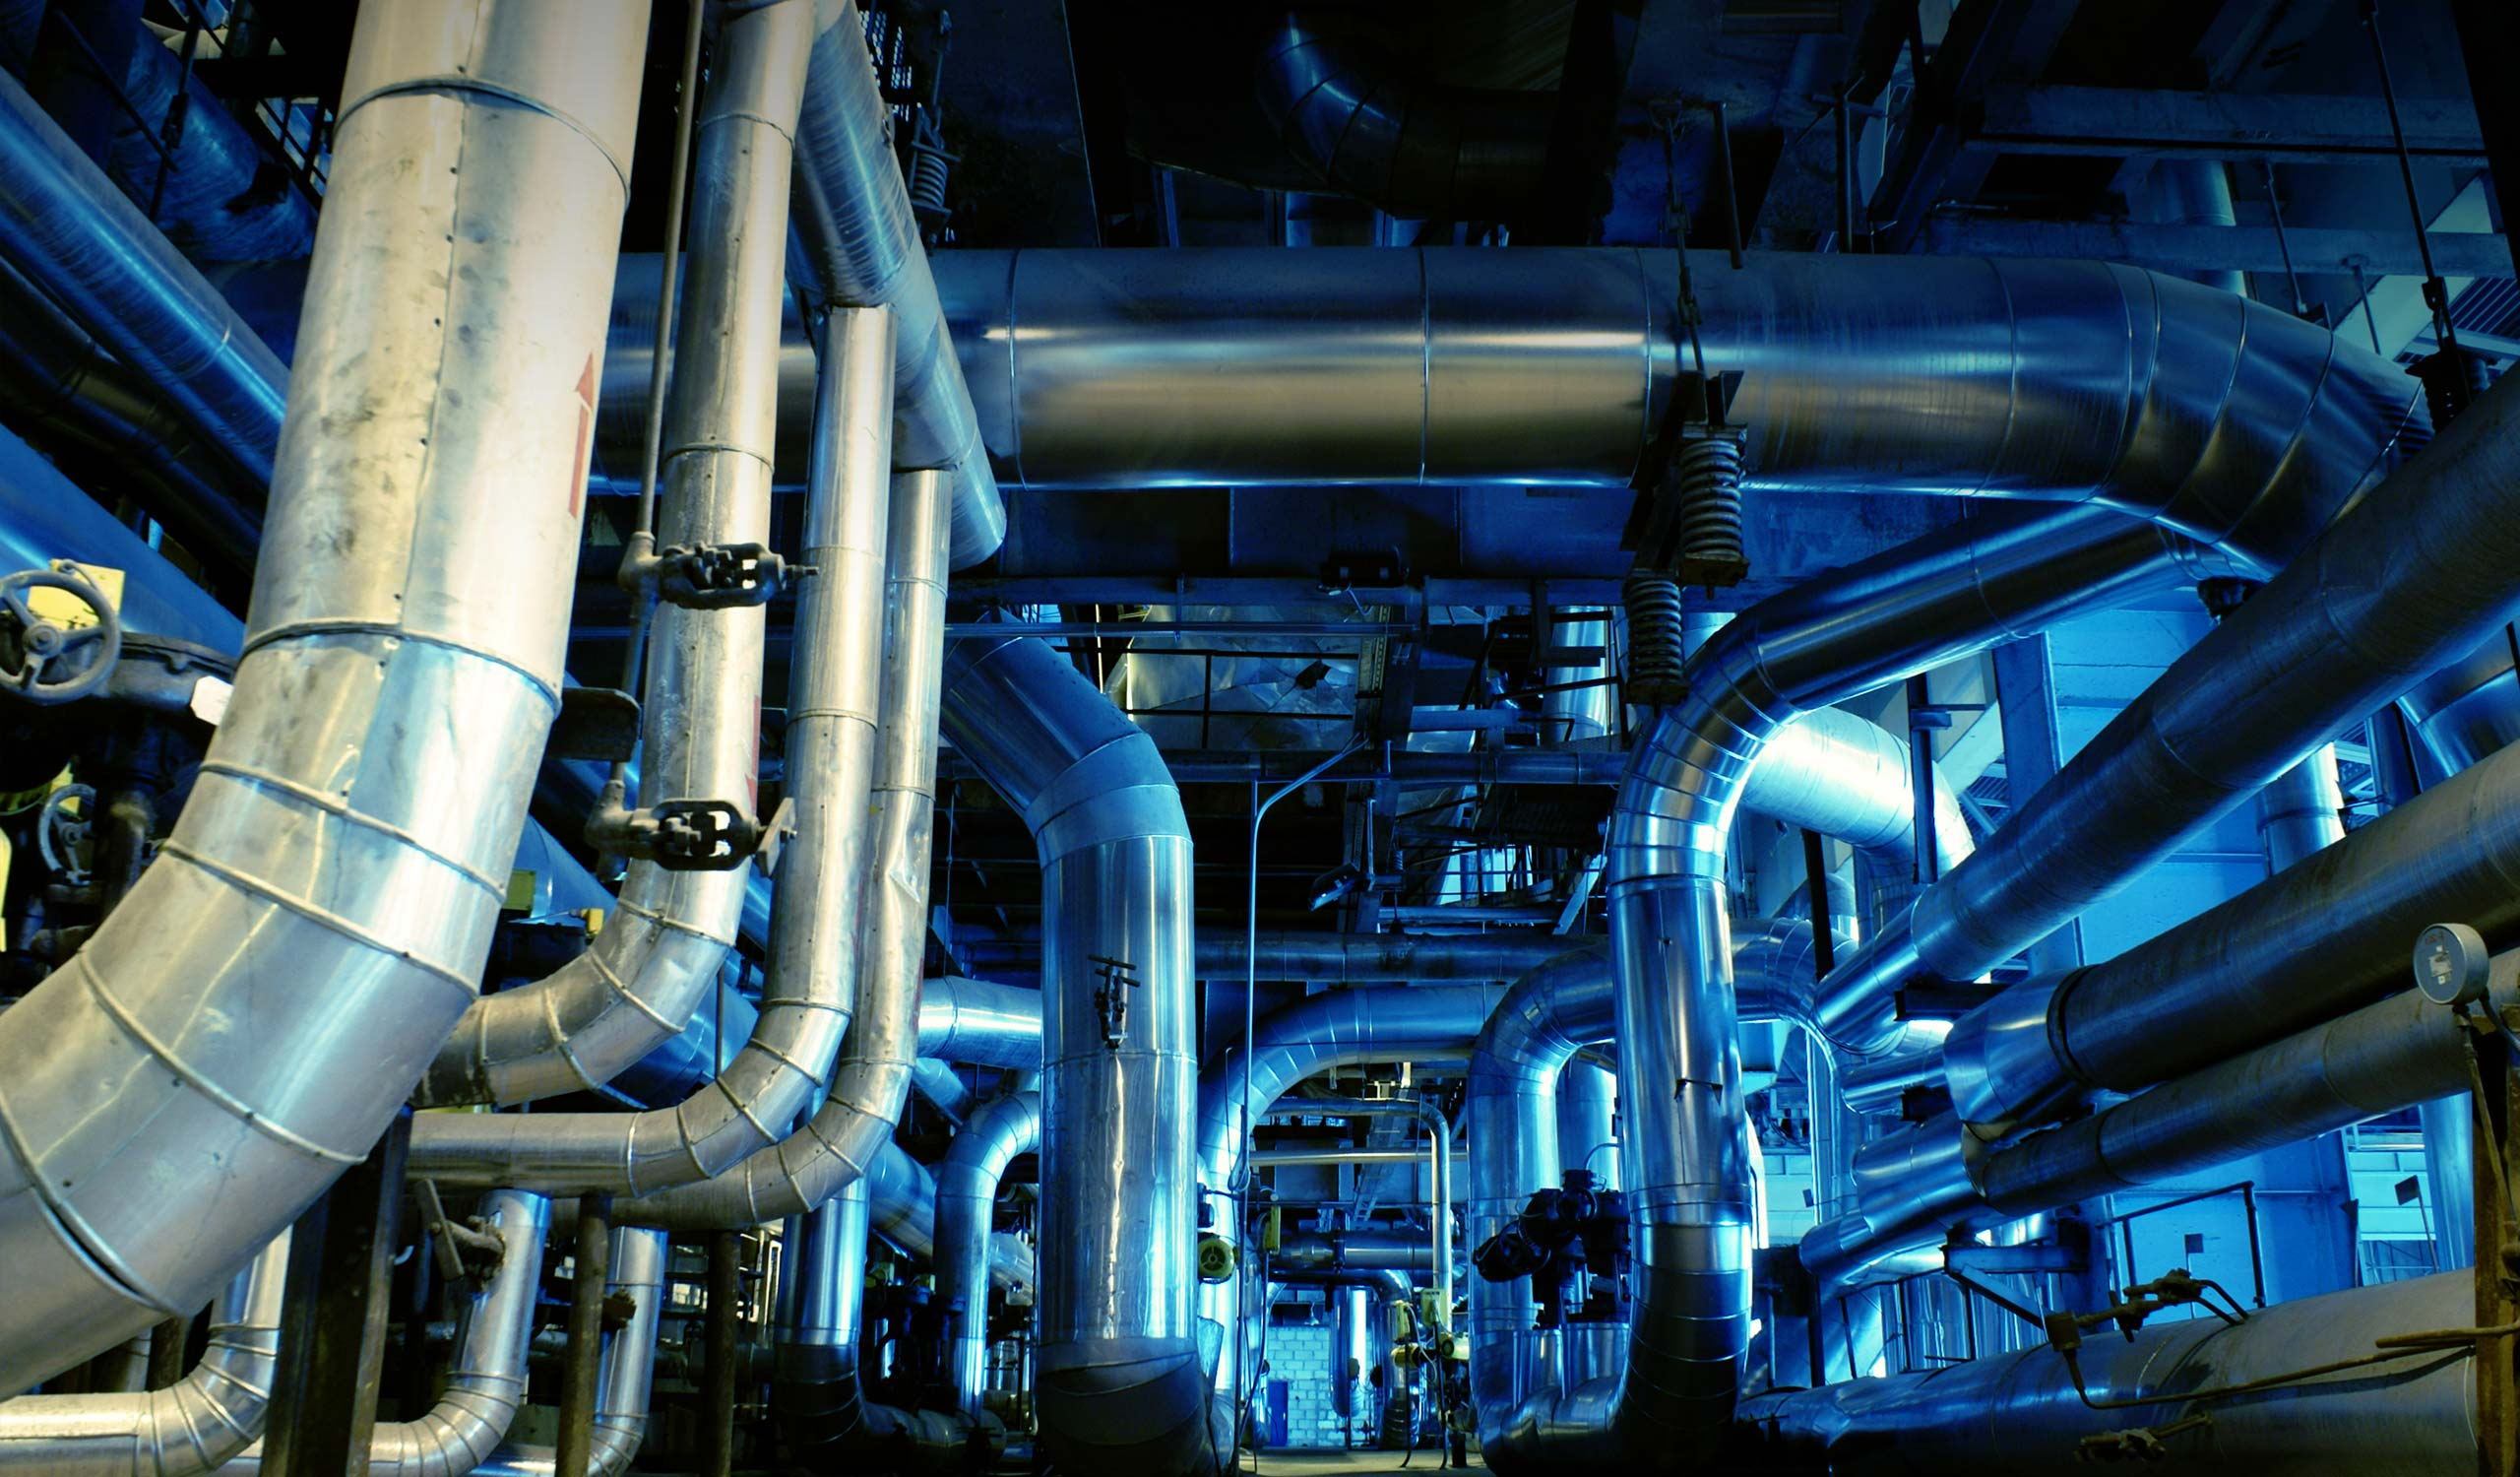 Pipe Flow Software - Generating and Analyzing Pipe Flow Simulations